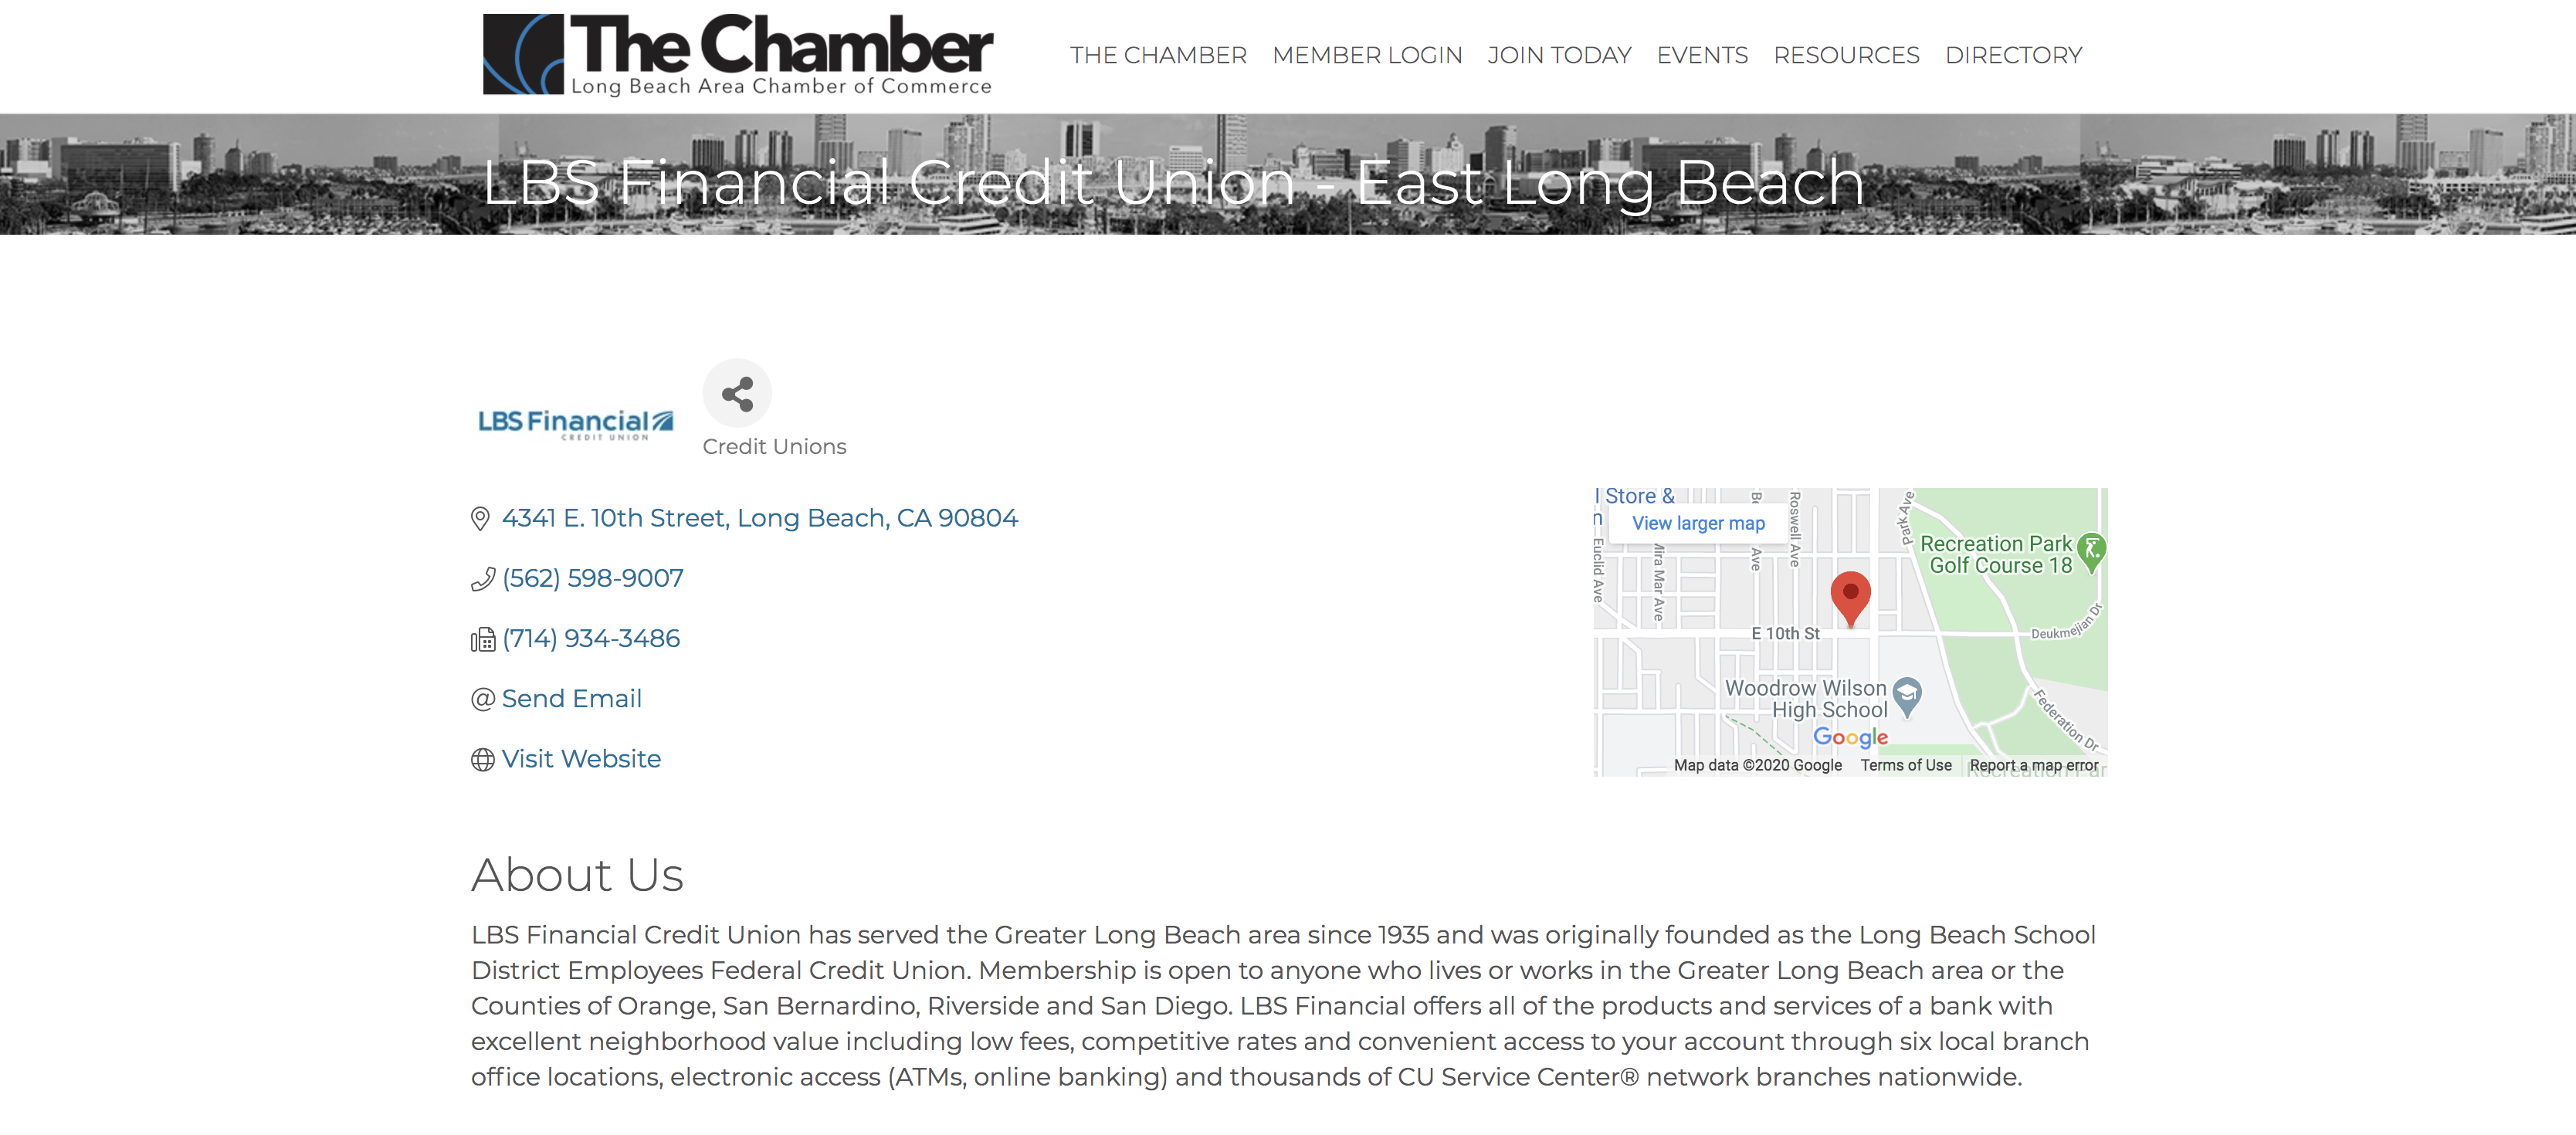 Long Beach Chamber of Commerce Directory